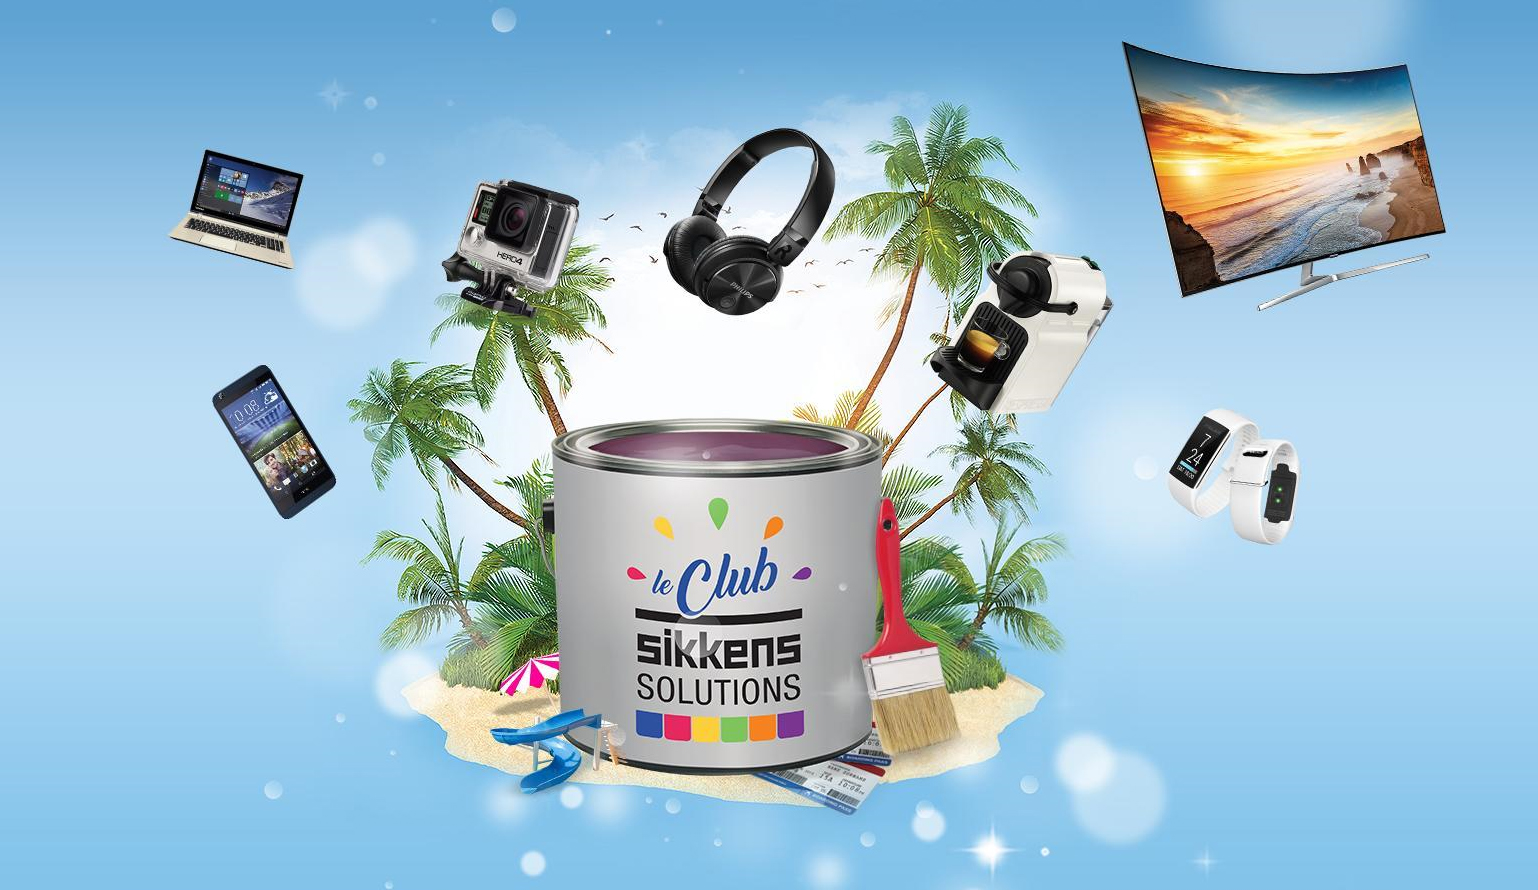 Le Club Sikkens Solutions